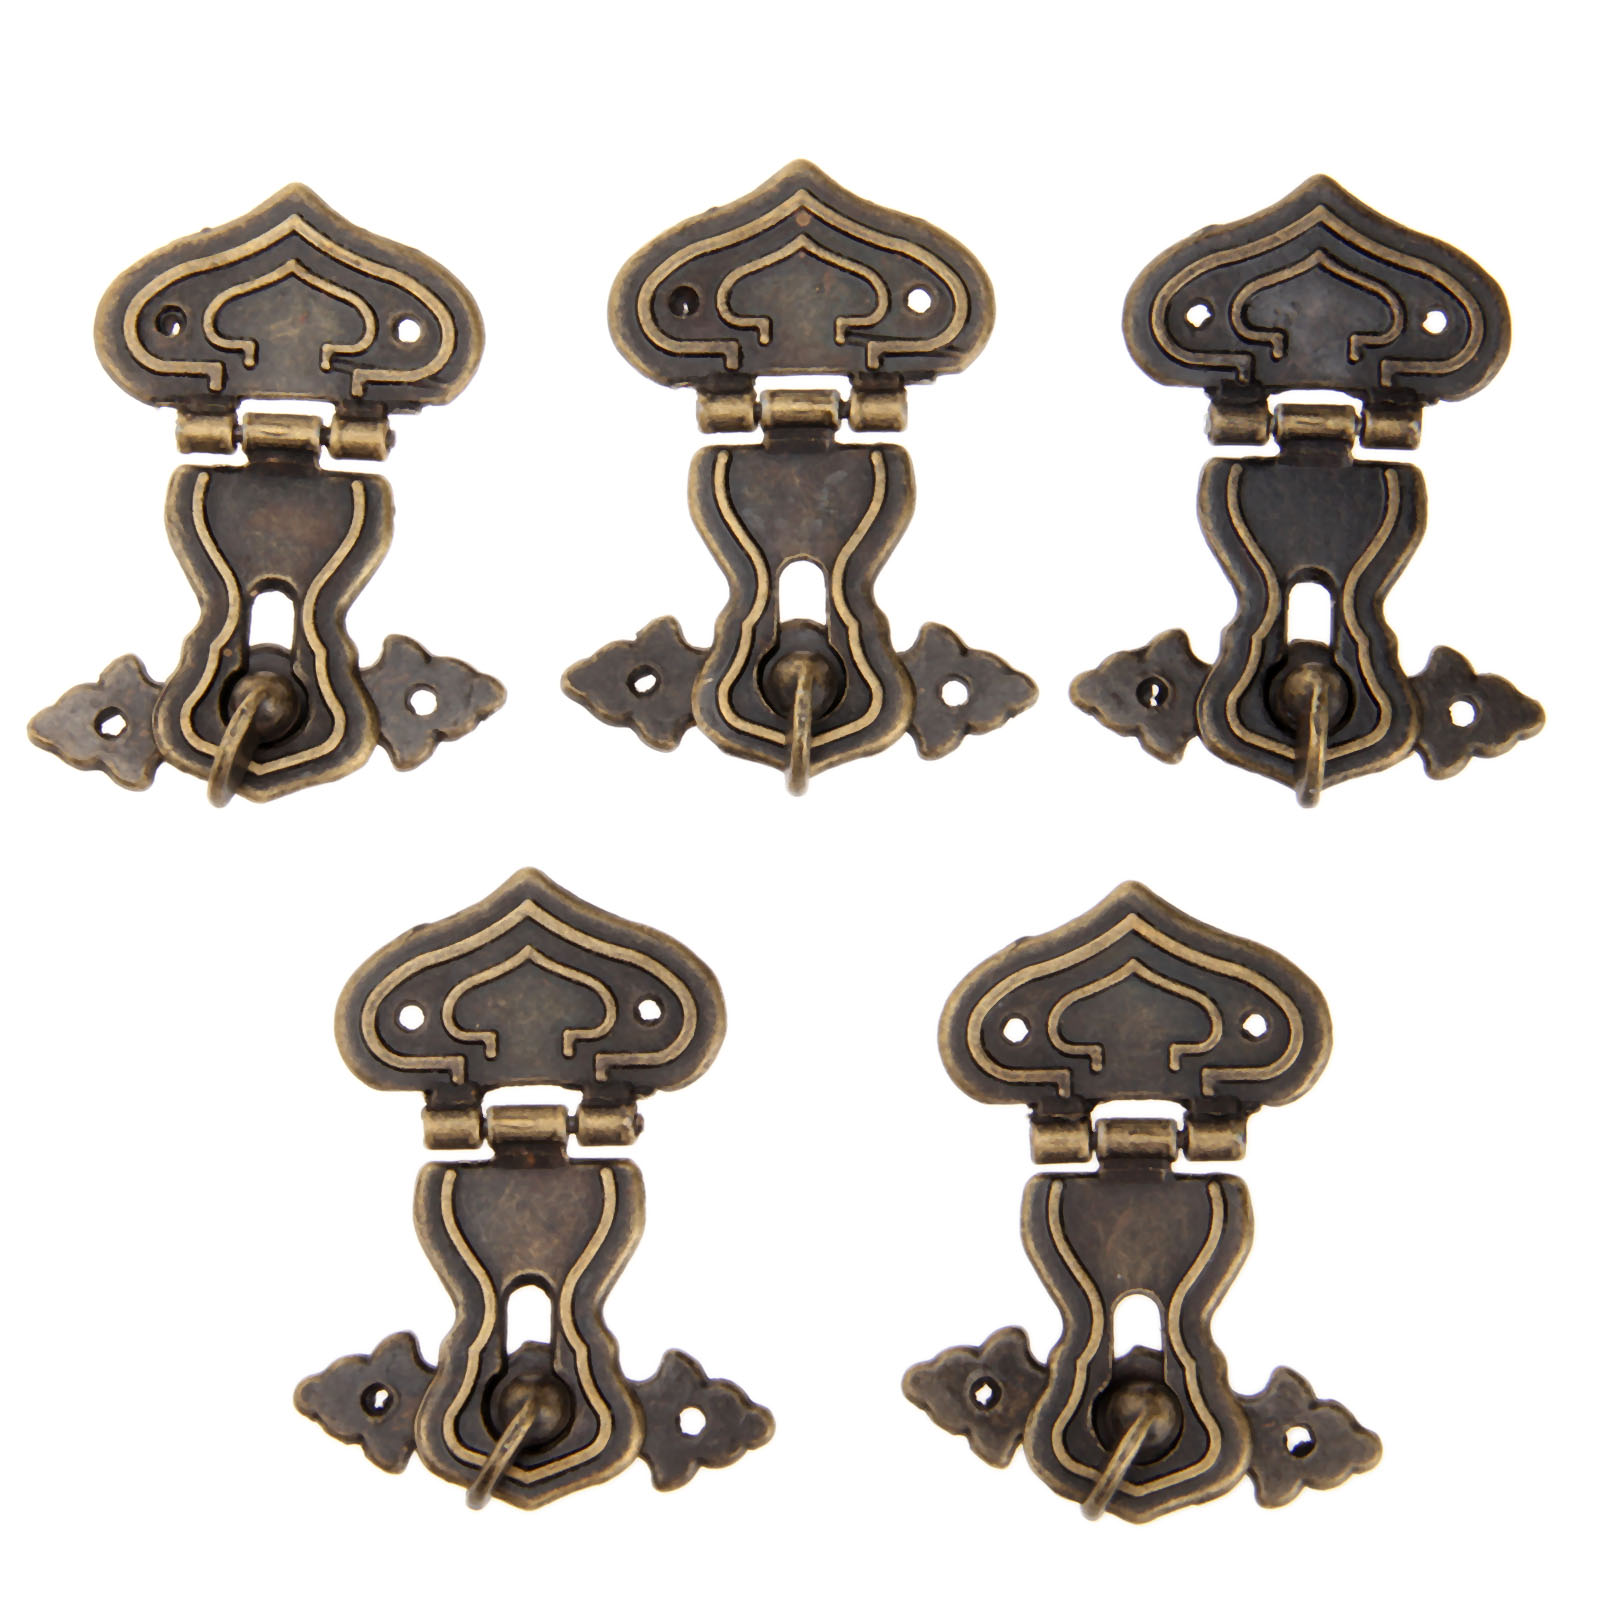 5Pcs 63x47mm Antique Metal Lock Decorative Hasps Hook Gift Wooden Jewelry Box Padlock With Screws Vintage Furniture Hardware